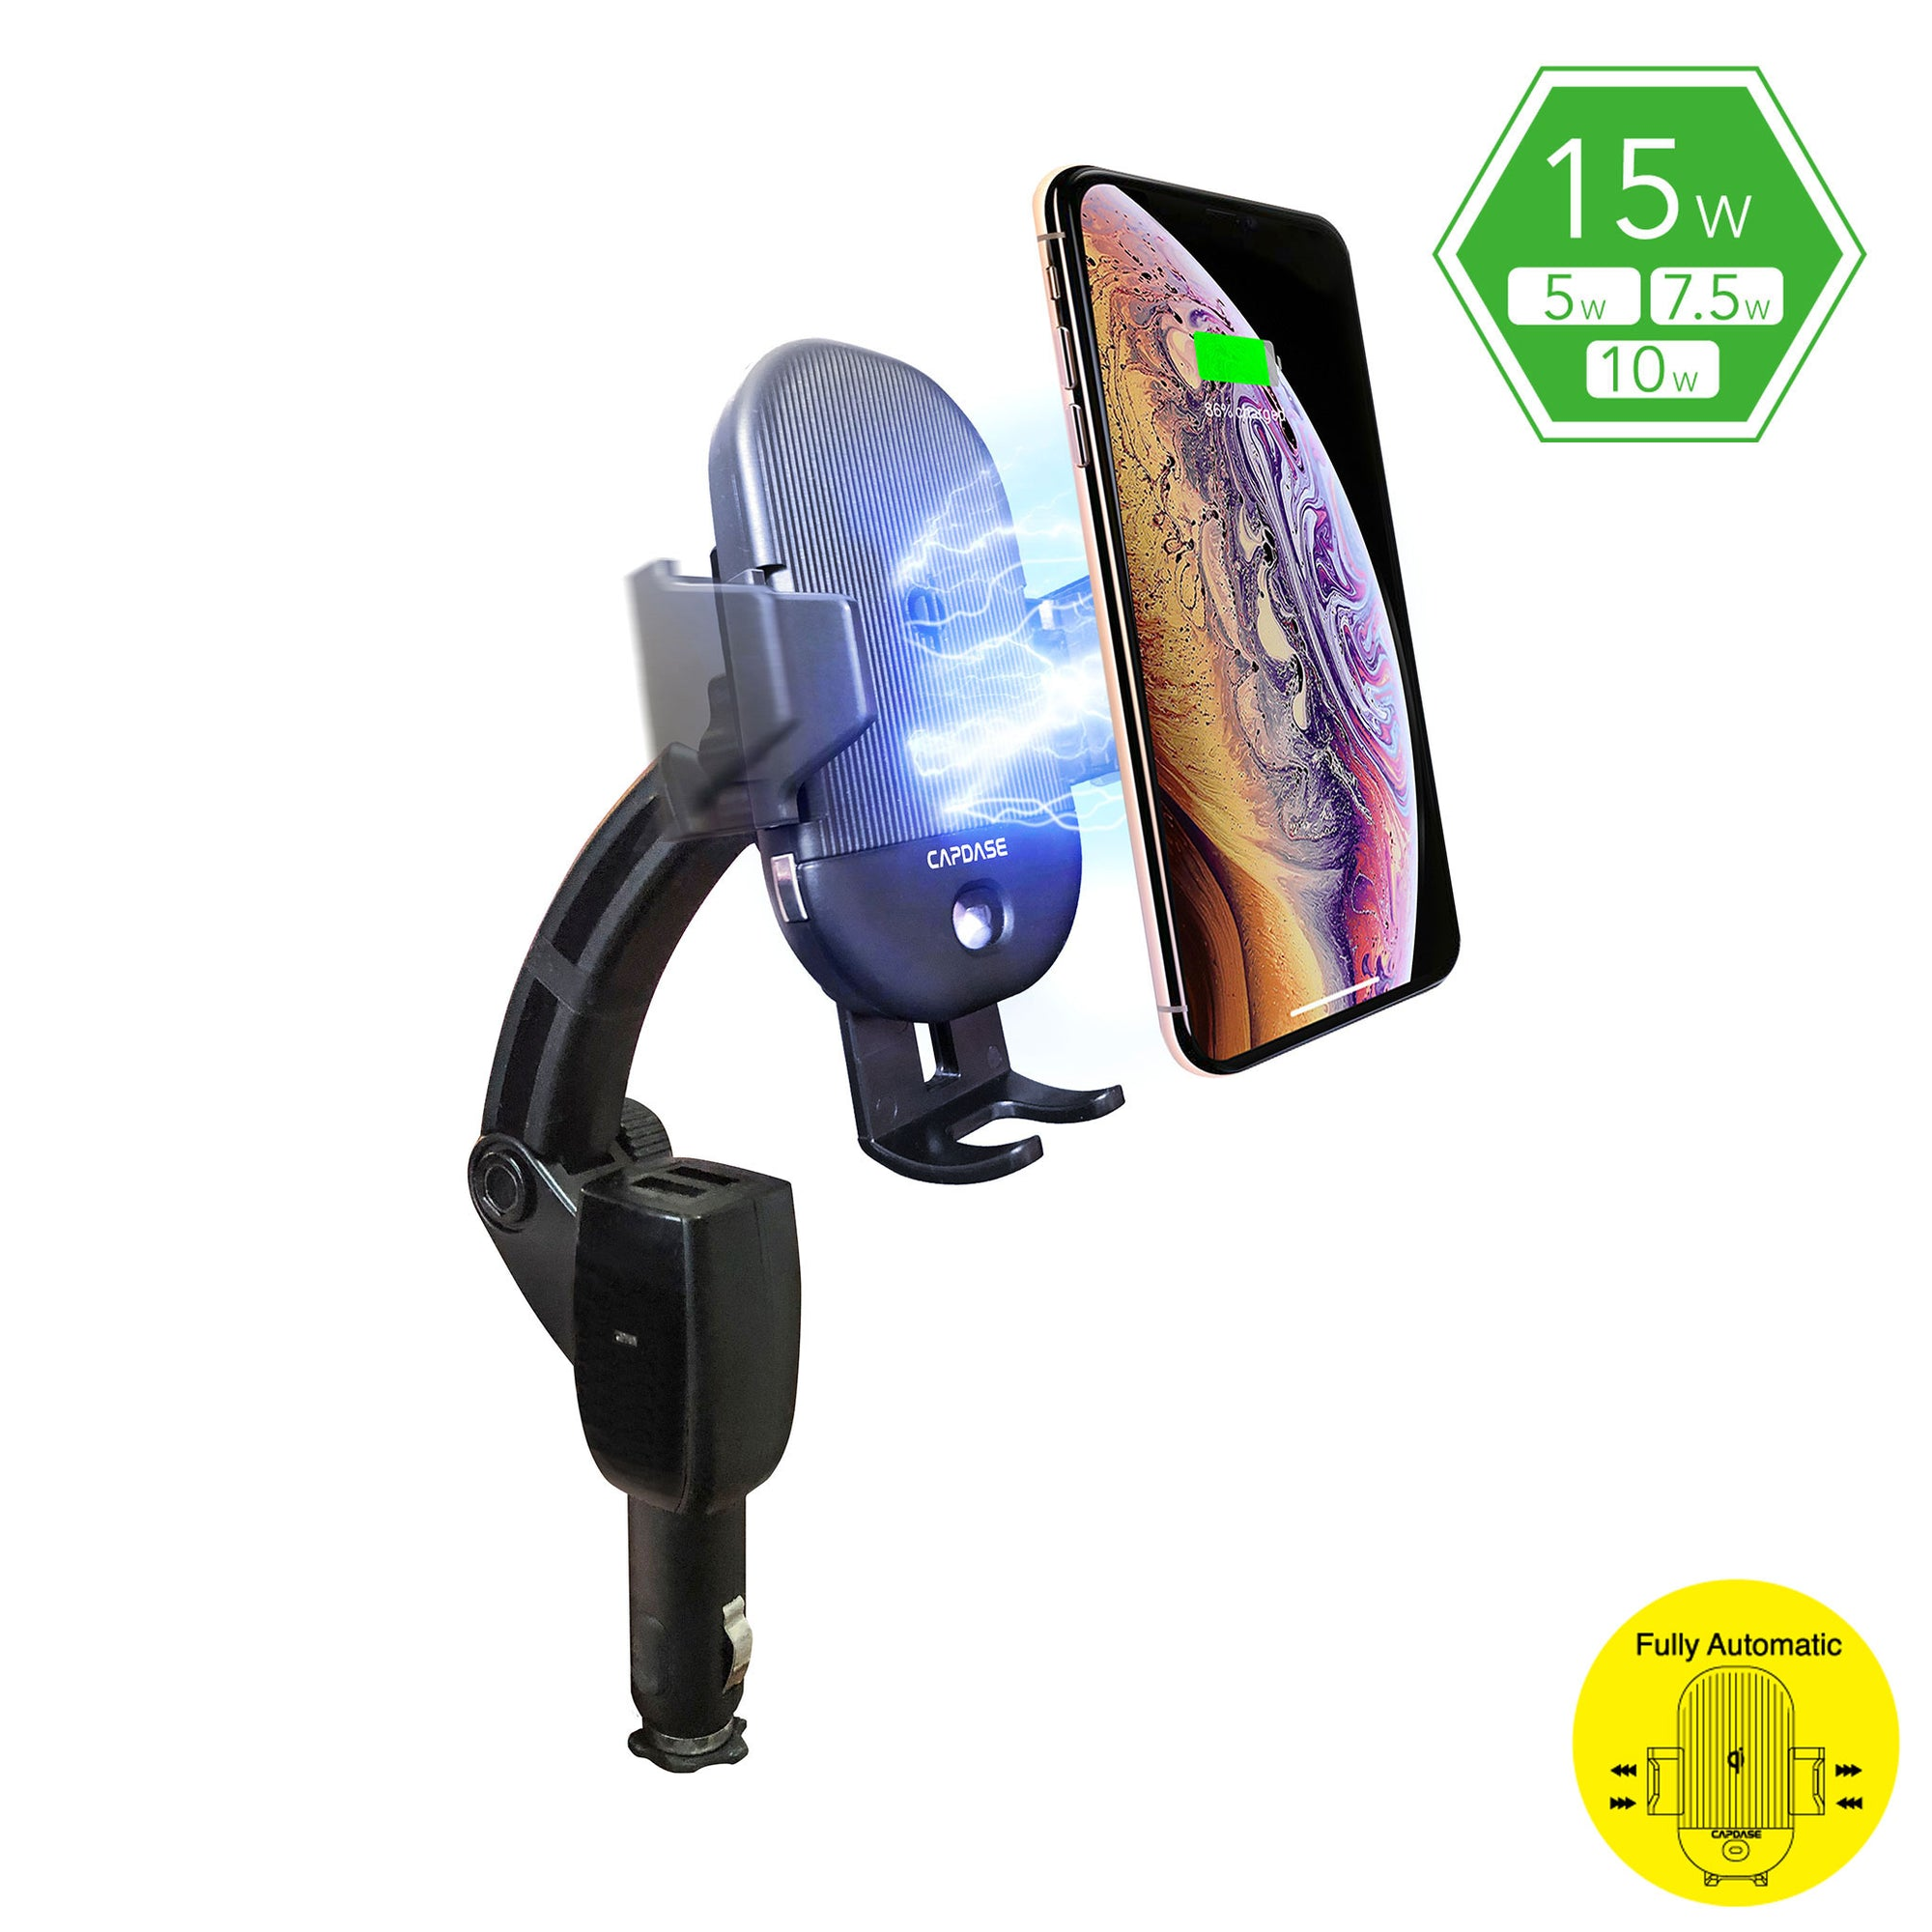 CB Power Pro Fast Wireless Charging Auto-Clamp Car Mount Charging Arm